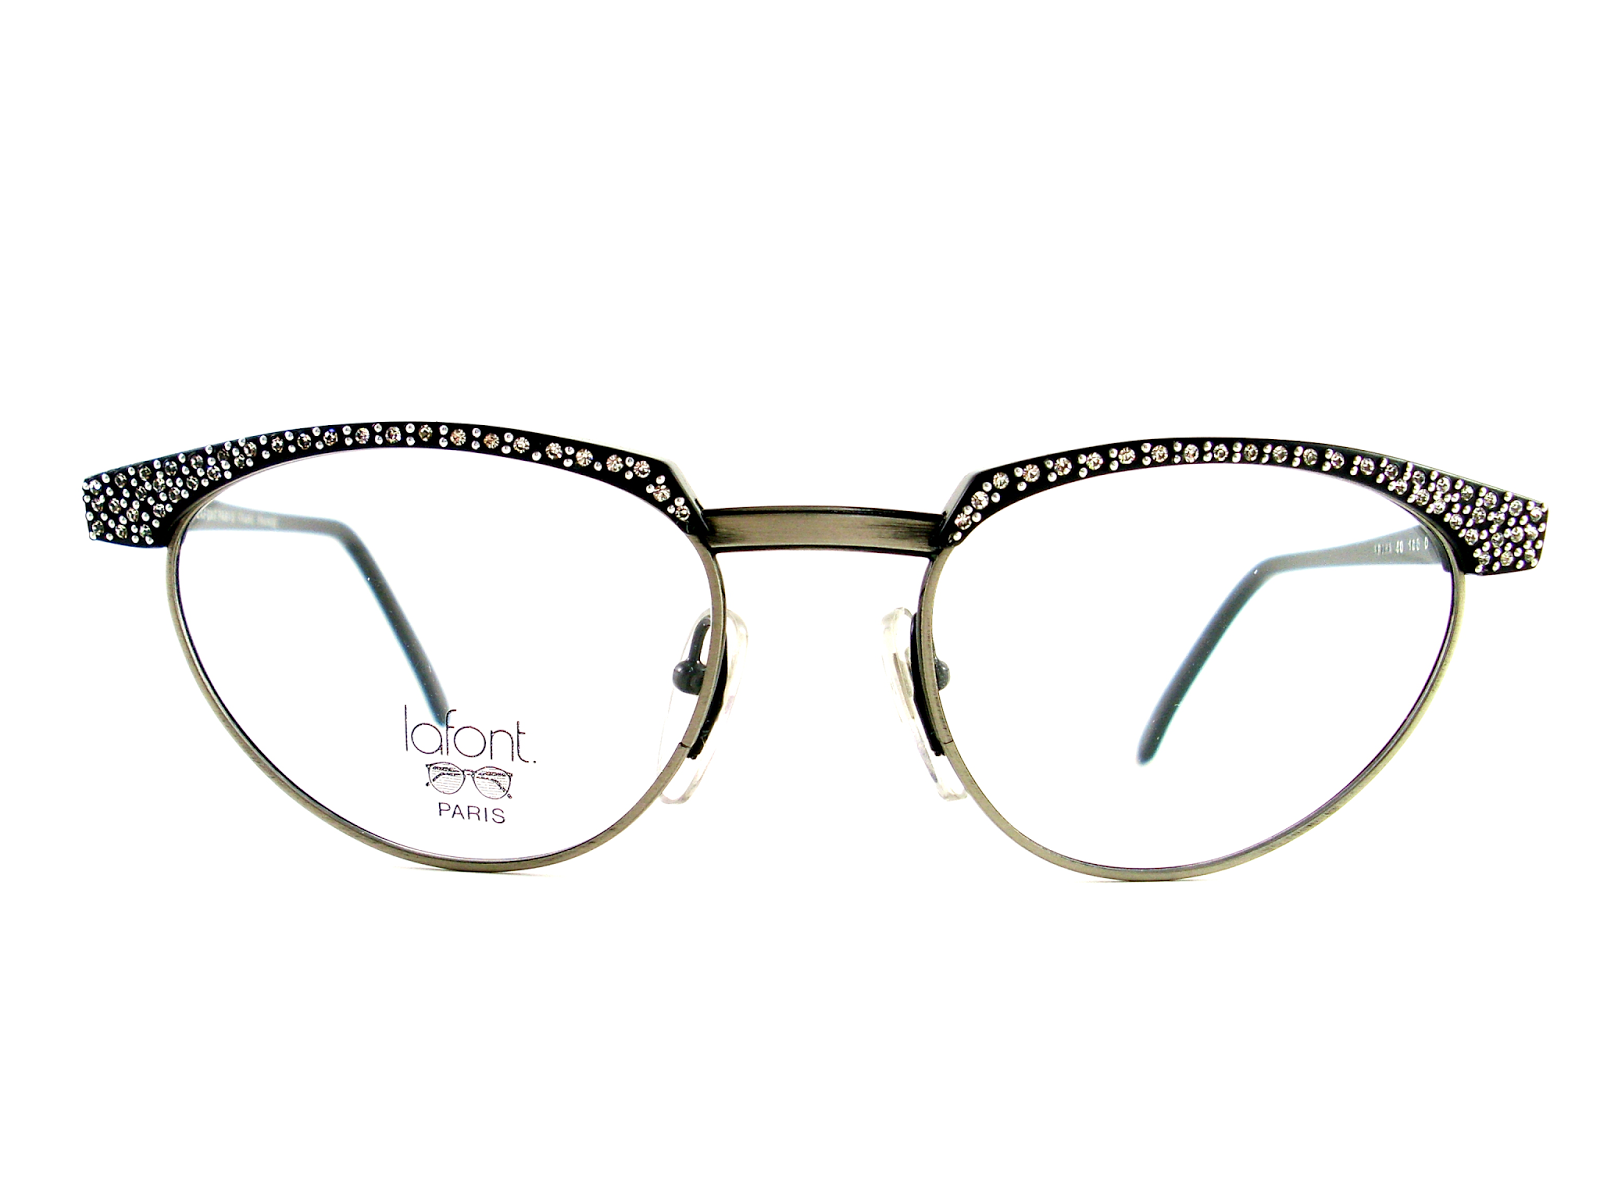 Jean lafont eyeglasses frames - Vintage Cat Eye Glasses Absolutely Stunning Jean Lafont Paris Eyeglasses Rhinestones And Silver Beads Adorn The Brow Rim And Bridge Have Antique Metal